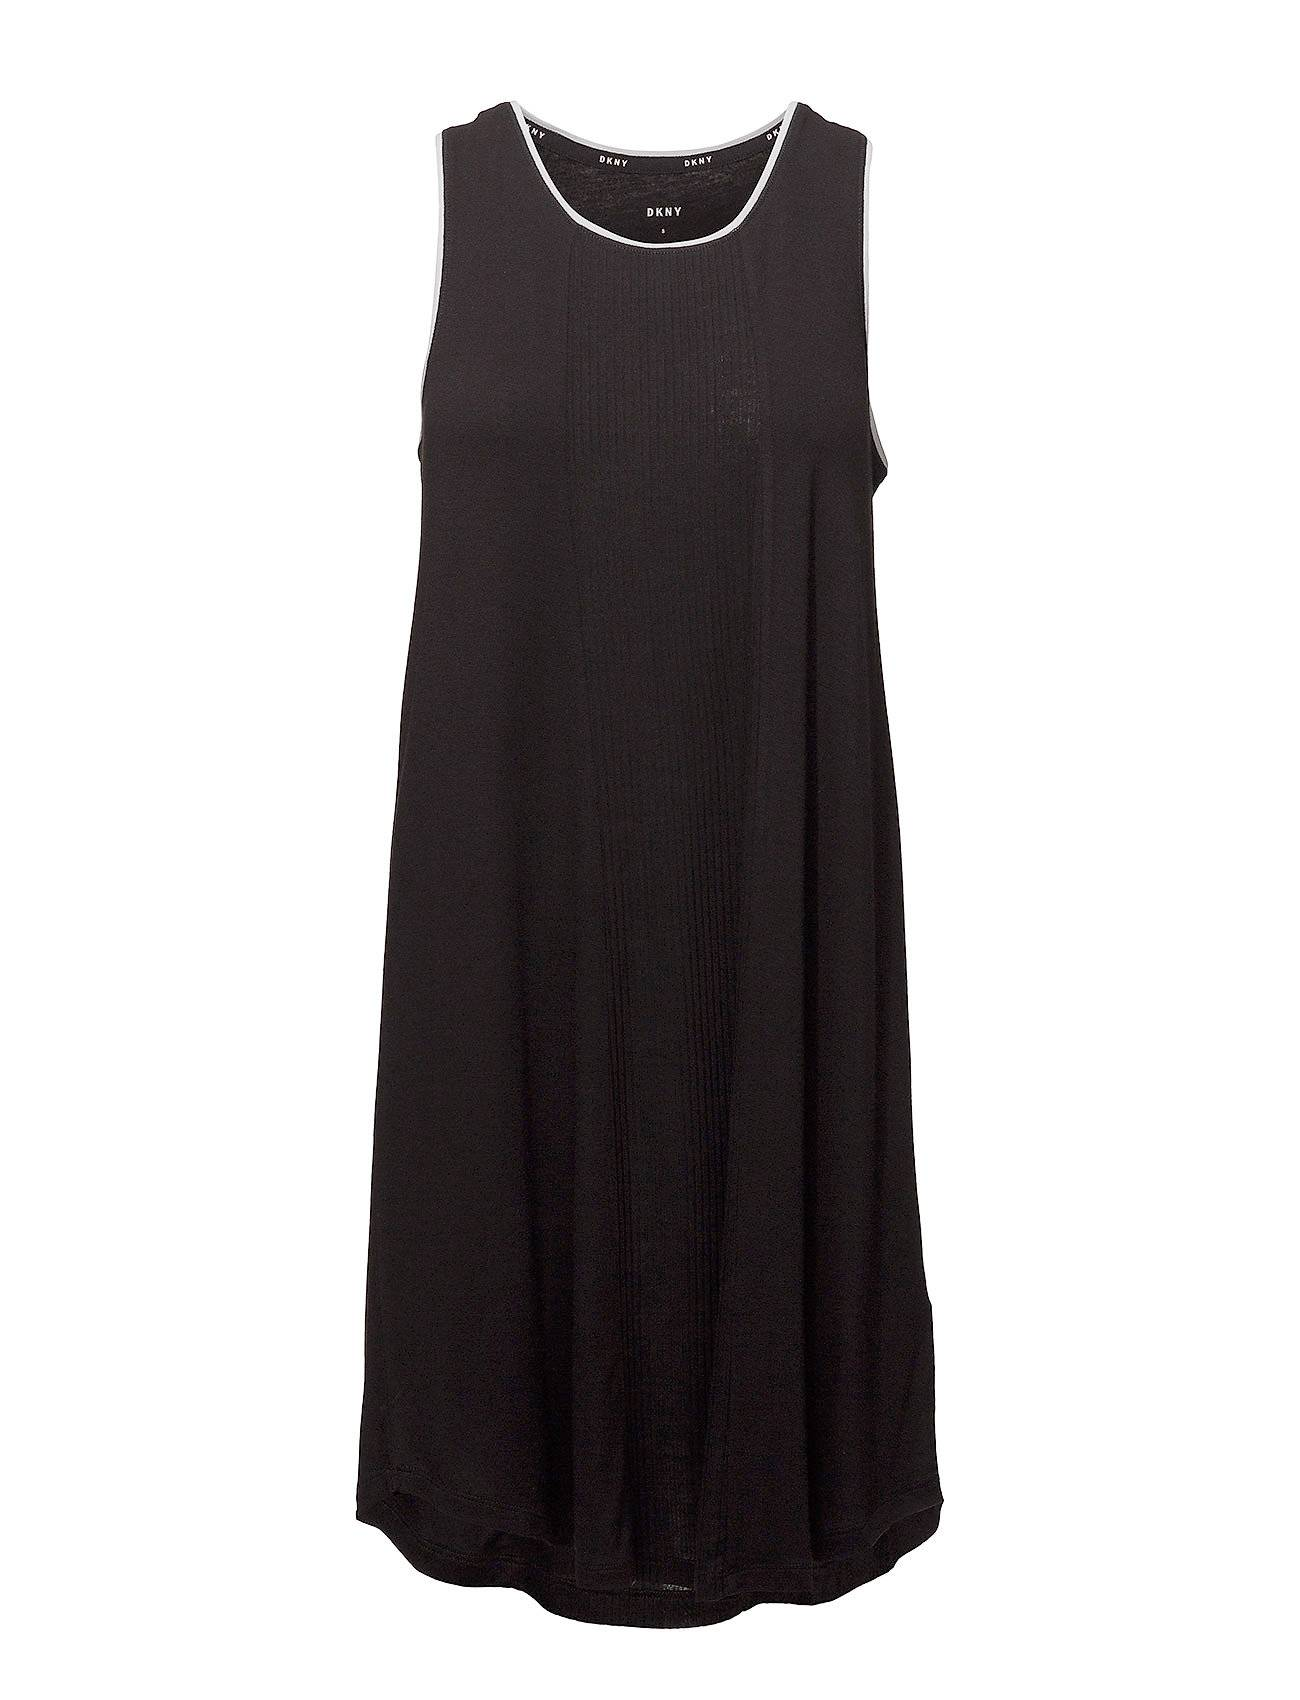 DKNY Homewear Dkny Core Essentials Chemise 91 Cm